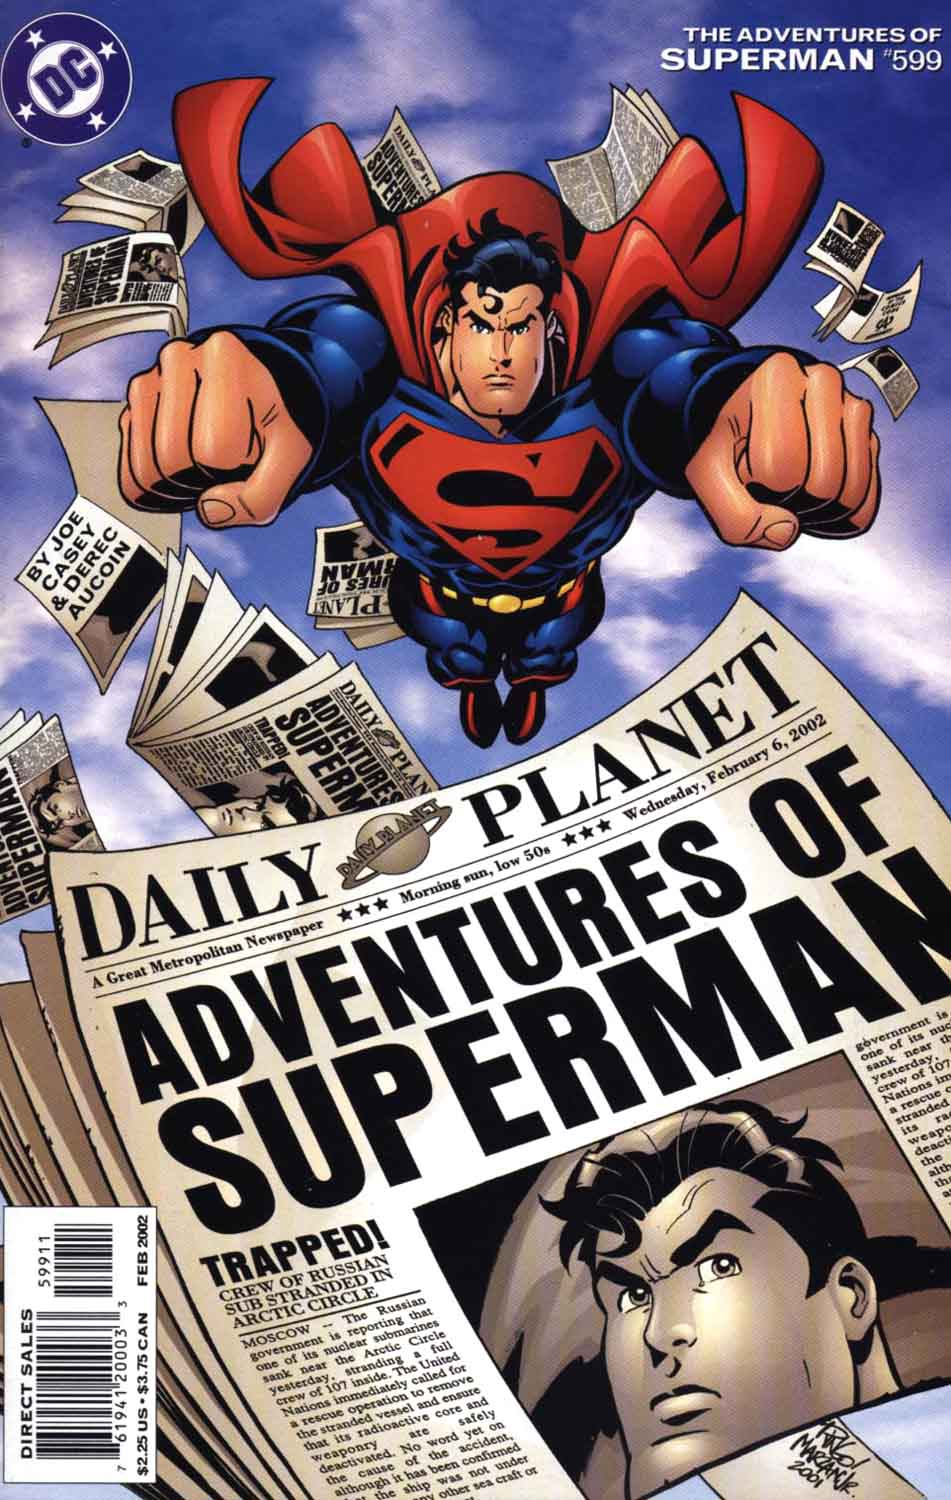 Read online Adventures of Superman (1987) comic -  Issue #599 - 1